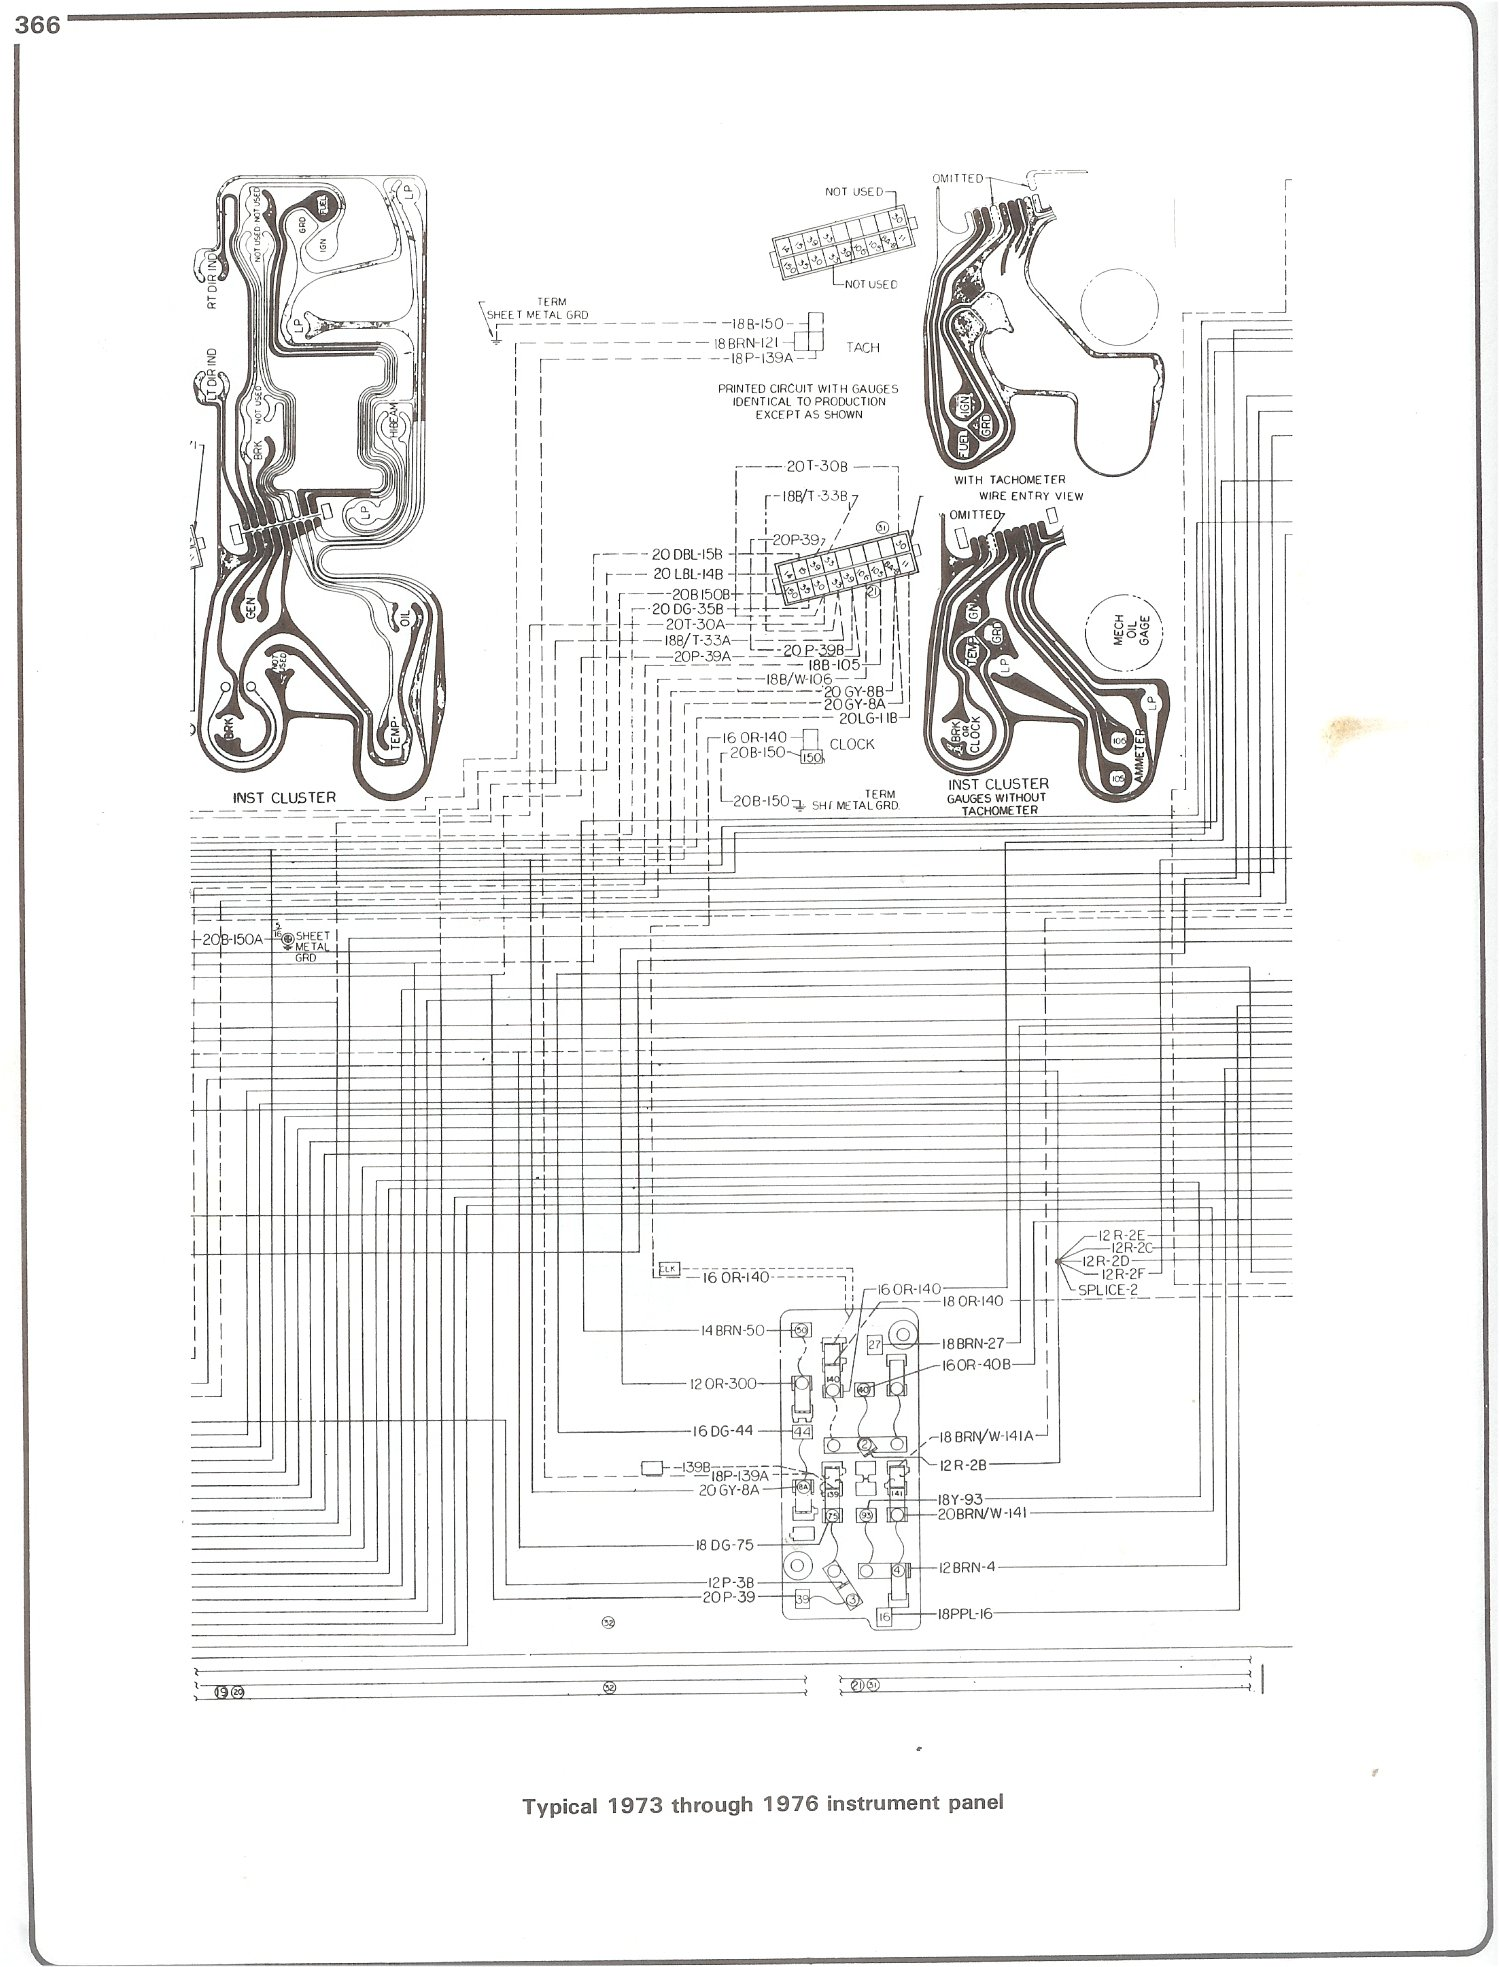 77 Chevy Wiring Diagram List Of Schematic Circuit Light 78 Nova Complete 73 87 Diagrams Rh Forum 87chevytrucks Com 1977